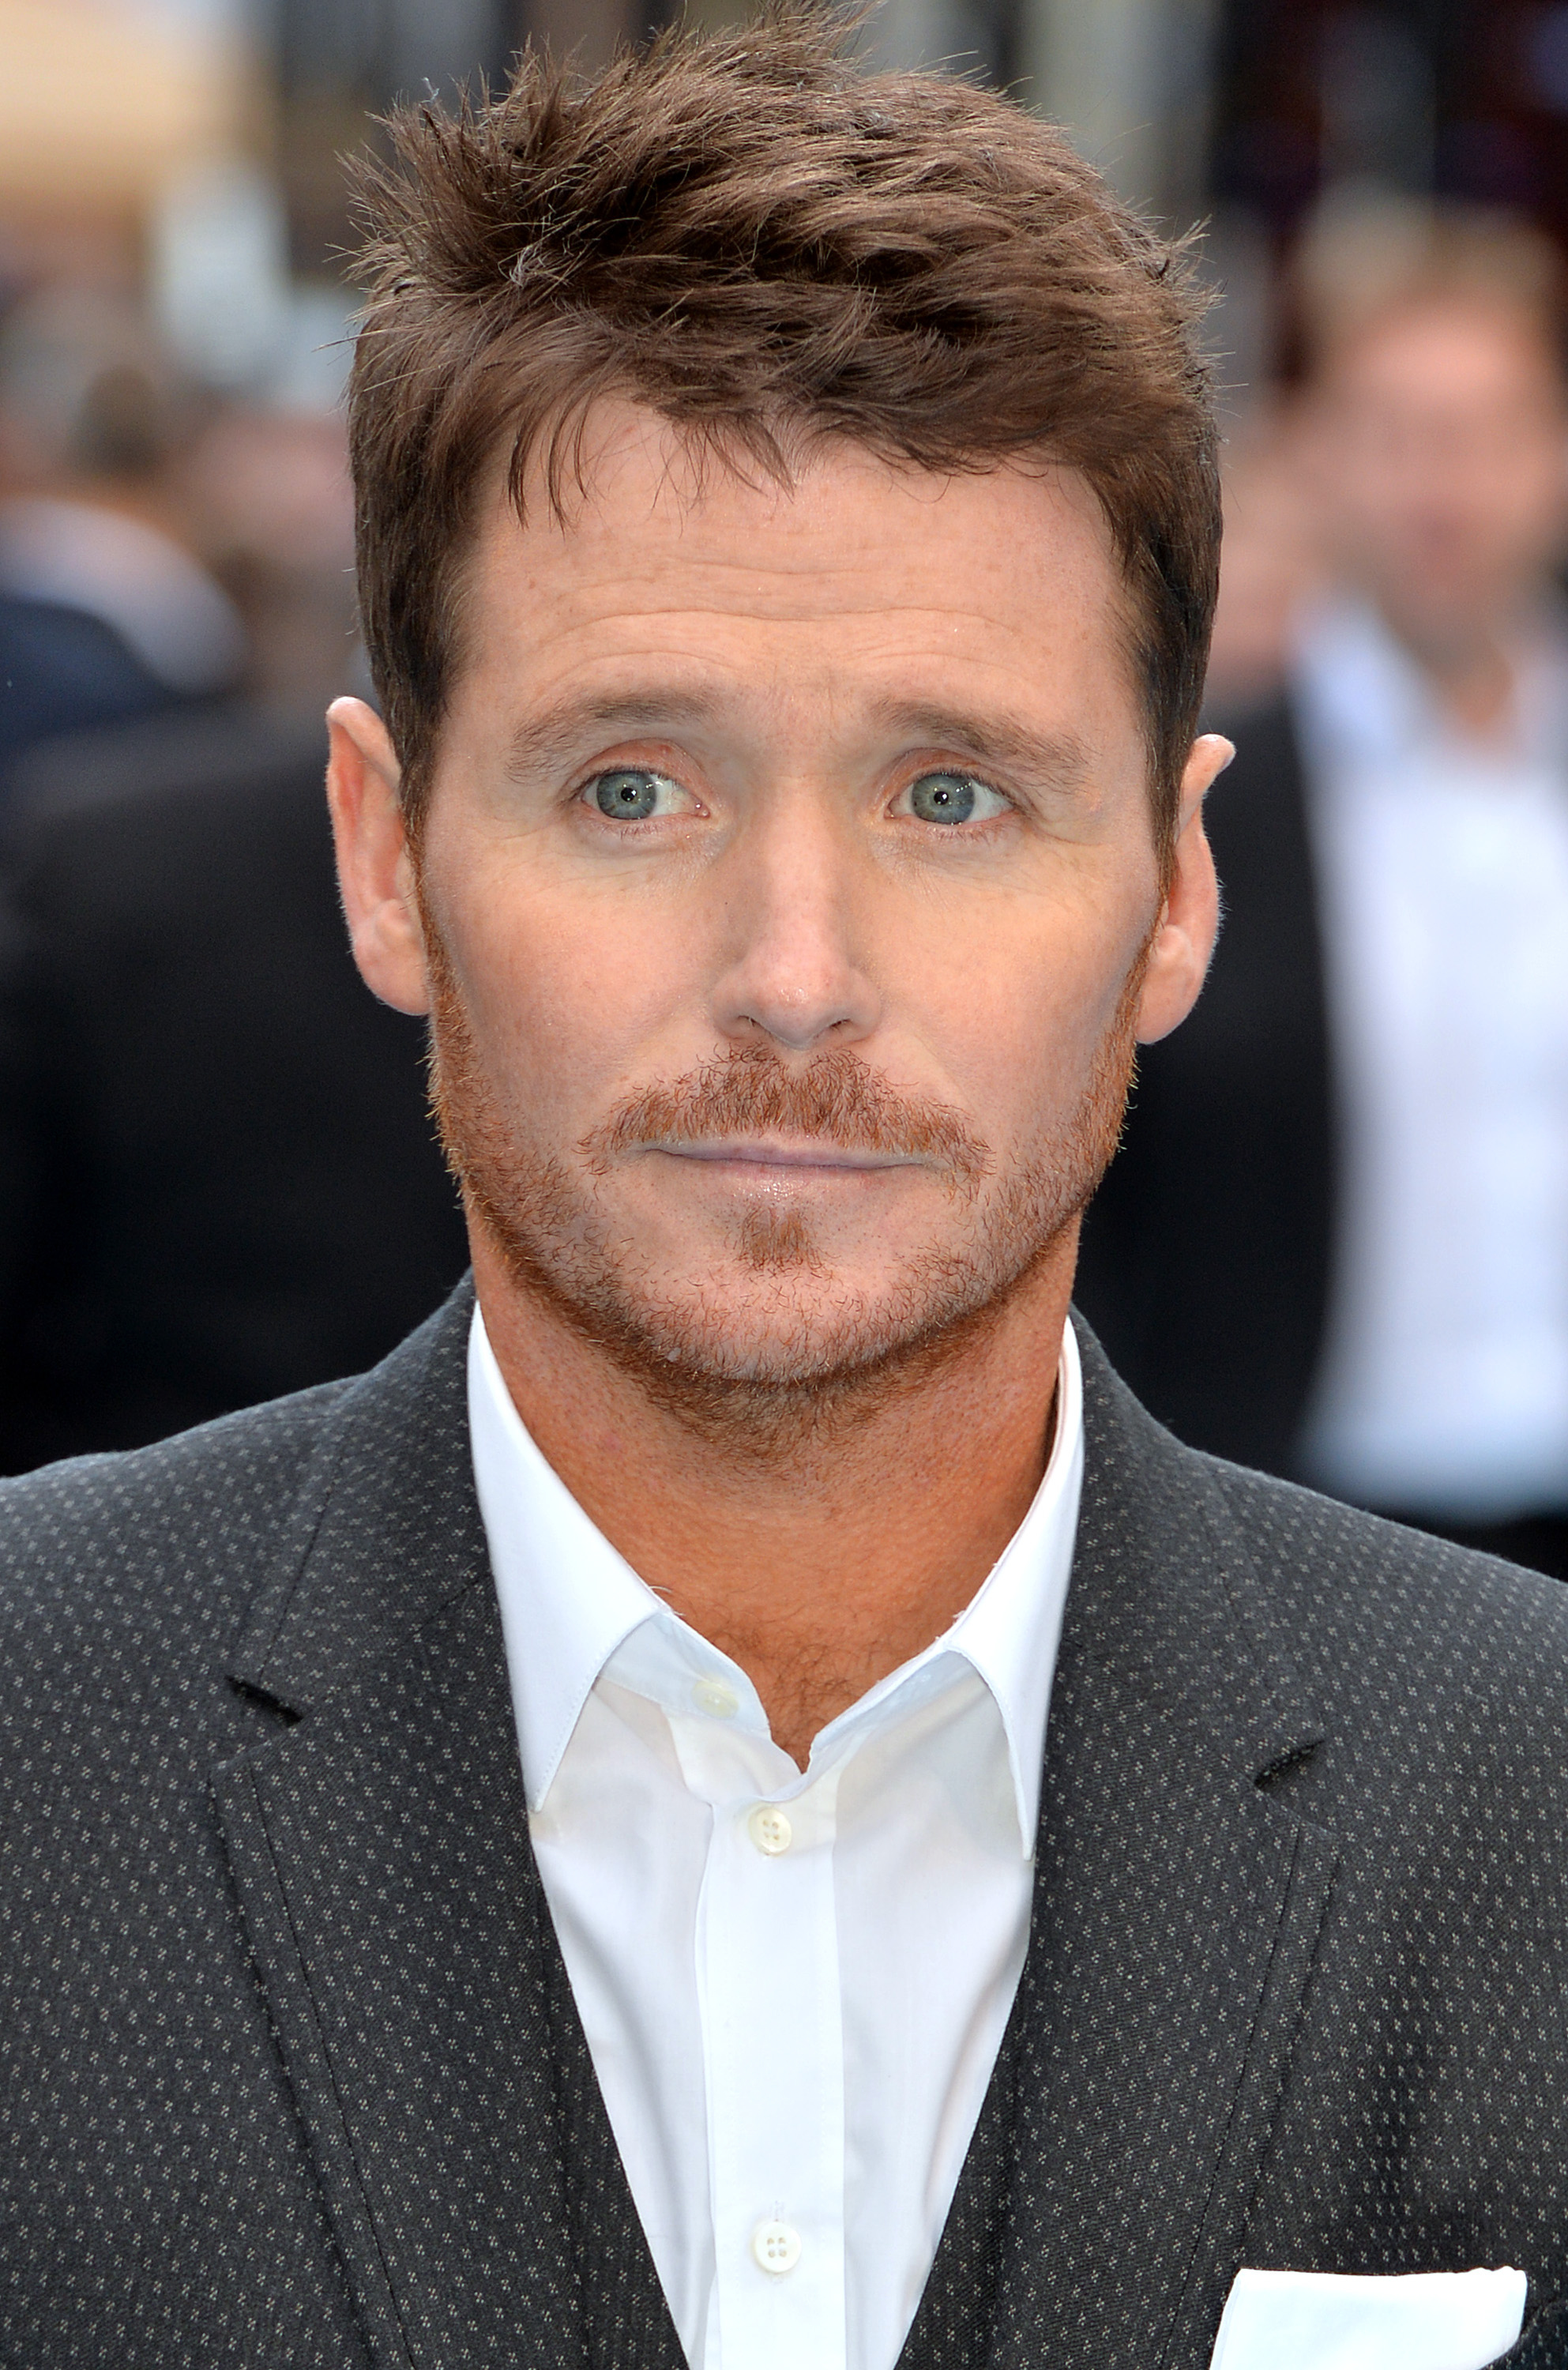 kevin connolly twitterkevin connolly entourage, kevin connolly height, kevin connolly photographer, kevin connolly michael jackson, kevin connolly, kevin connolly instagram, kevin connolly leonardo dicaprio, kevin connolly twitter, kevin connolly height and weight, kevin connolly and leo dicaprio, kevin connolly wiki, kevin connolly sabina gadecki, kevin connolly rocky 5, kevin connolly wdw, kevin connolly rocky, kevin connolly net worth, kevin connolly imdb, kevin connolly car sales, kevin connolly nicky hilton, kevin connolly married